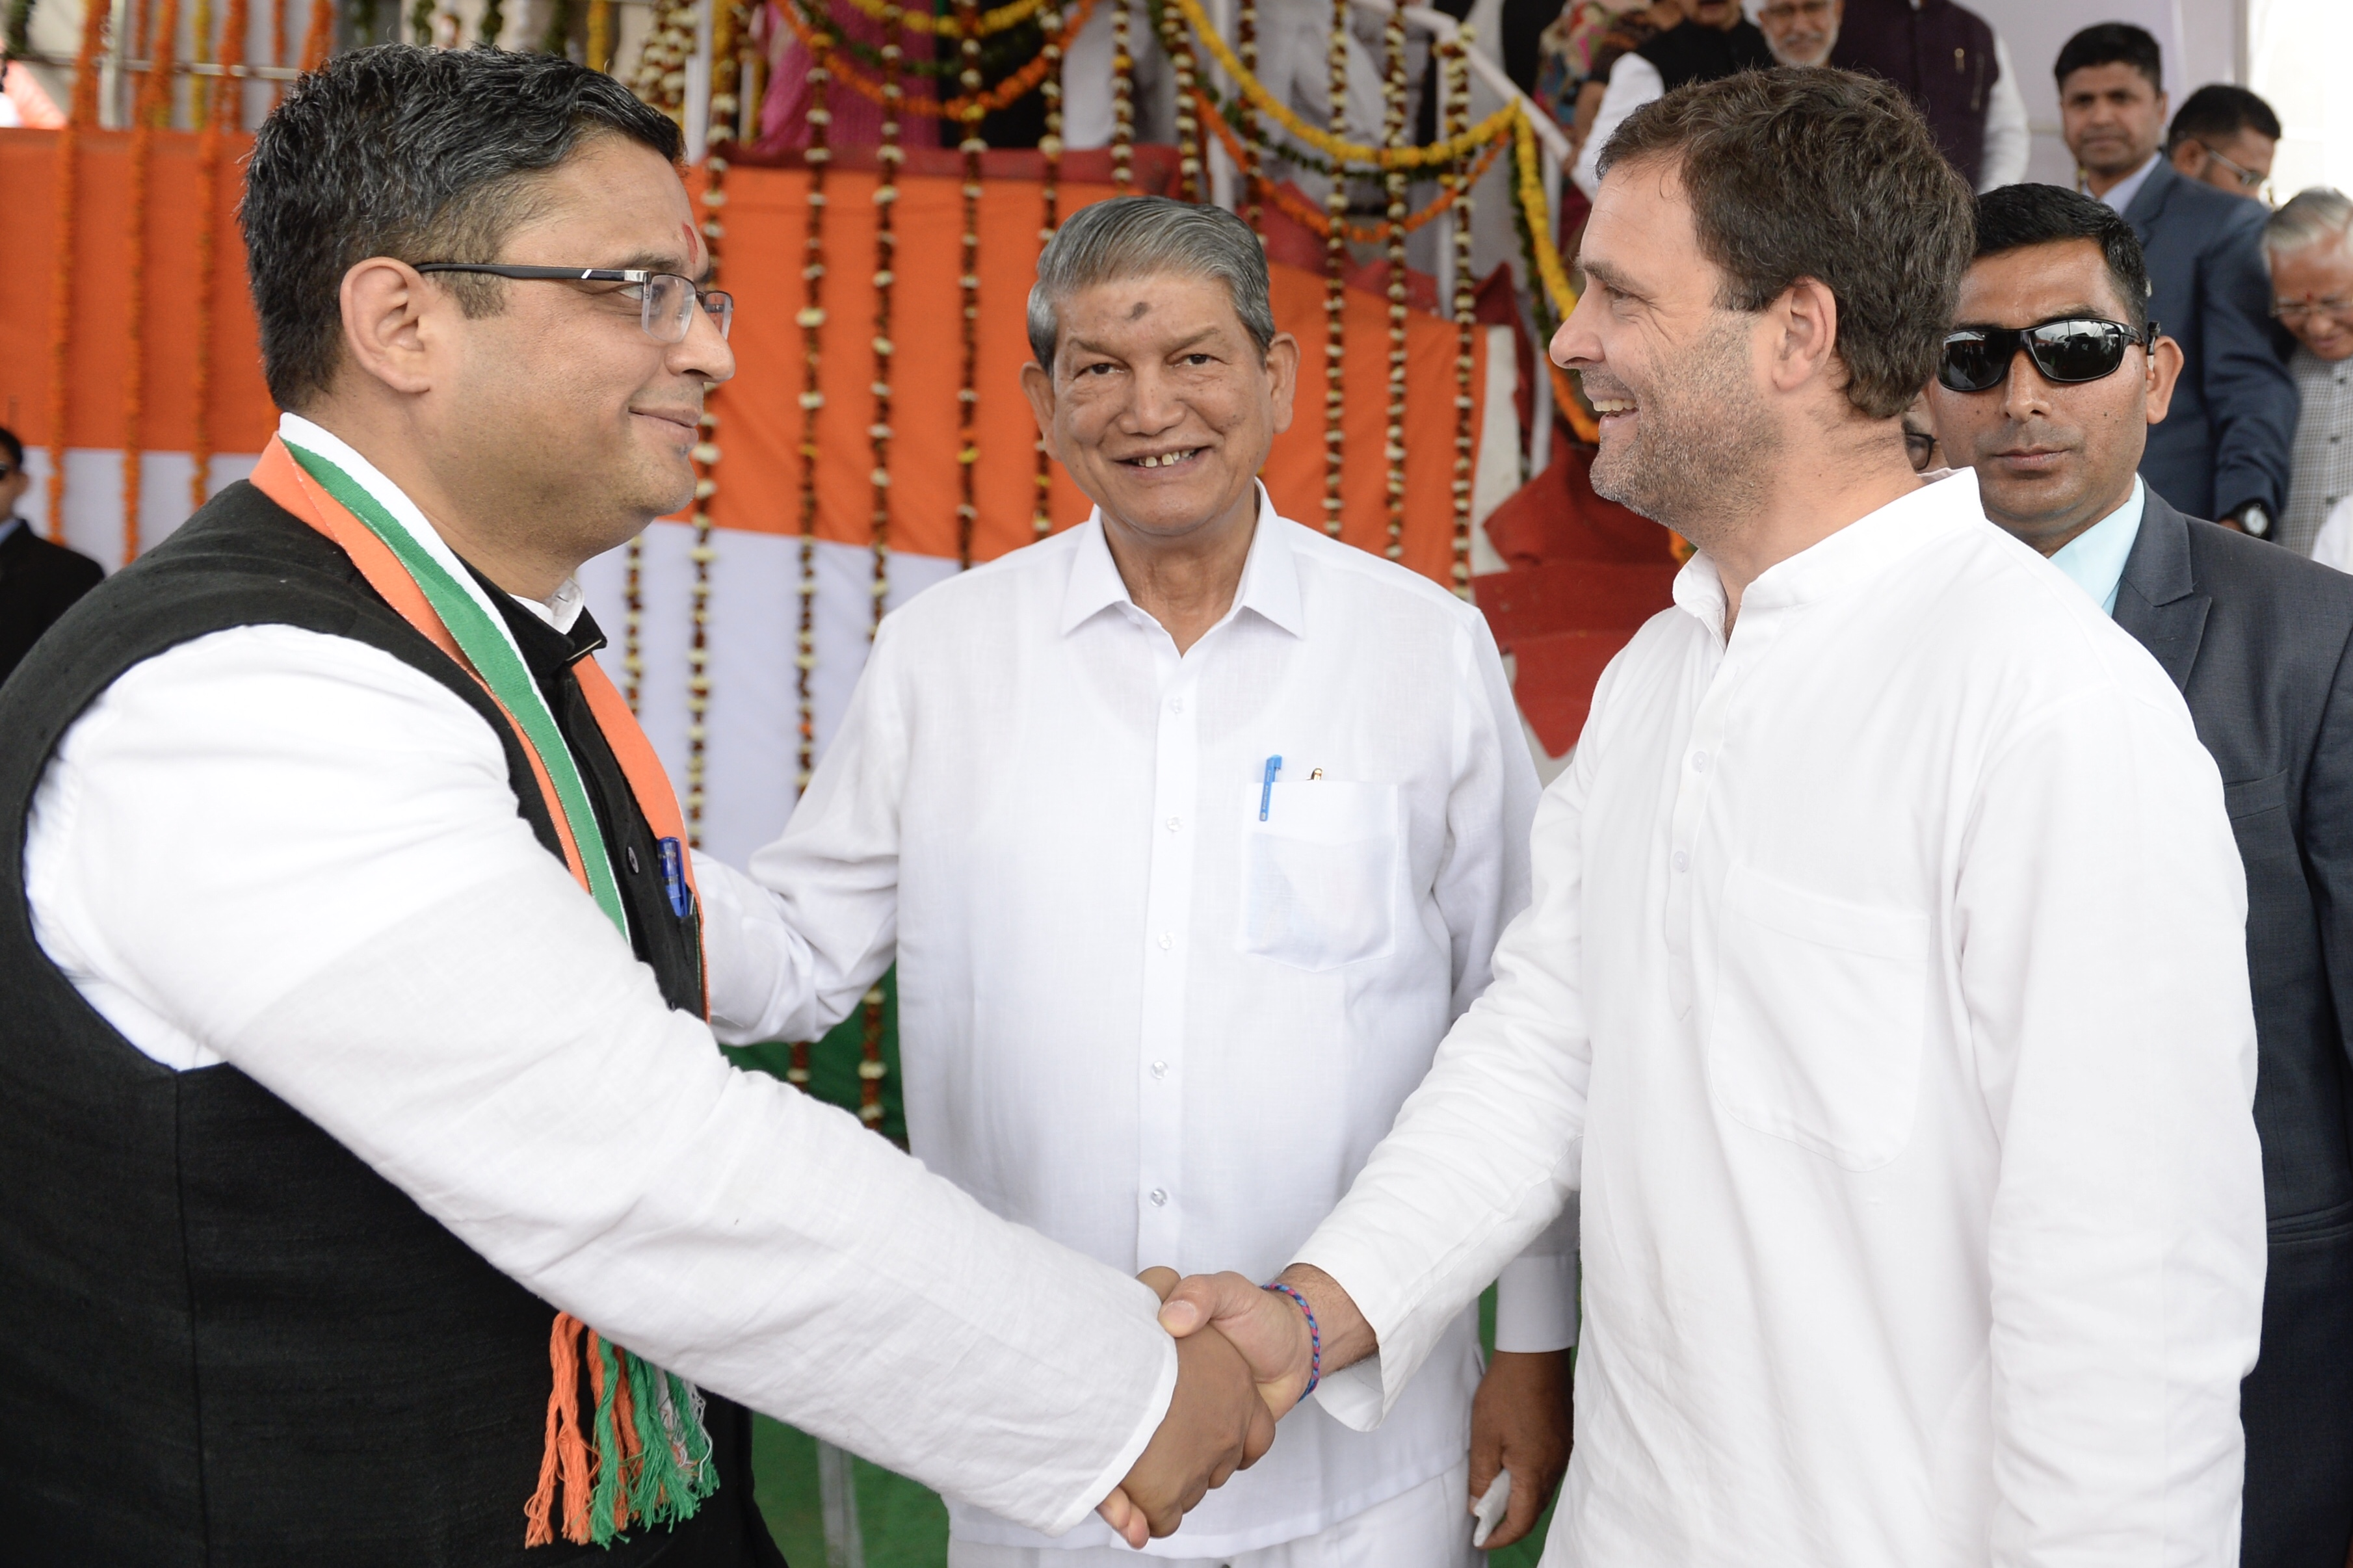 With Khanduri on its side, Congress eyes more LS seats in Uttarakhand